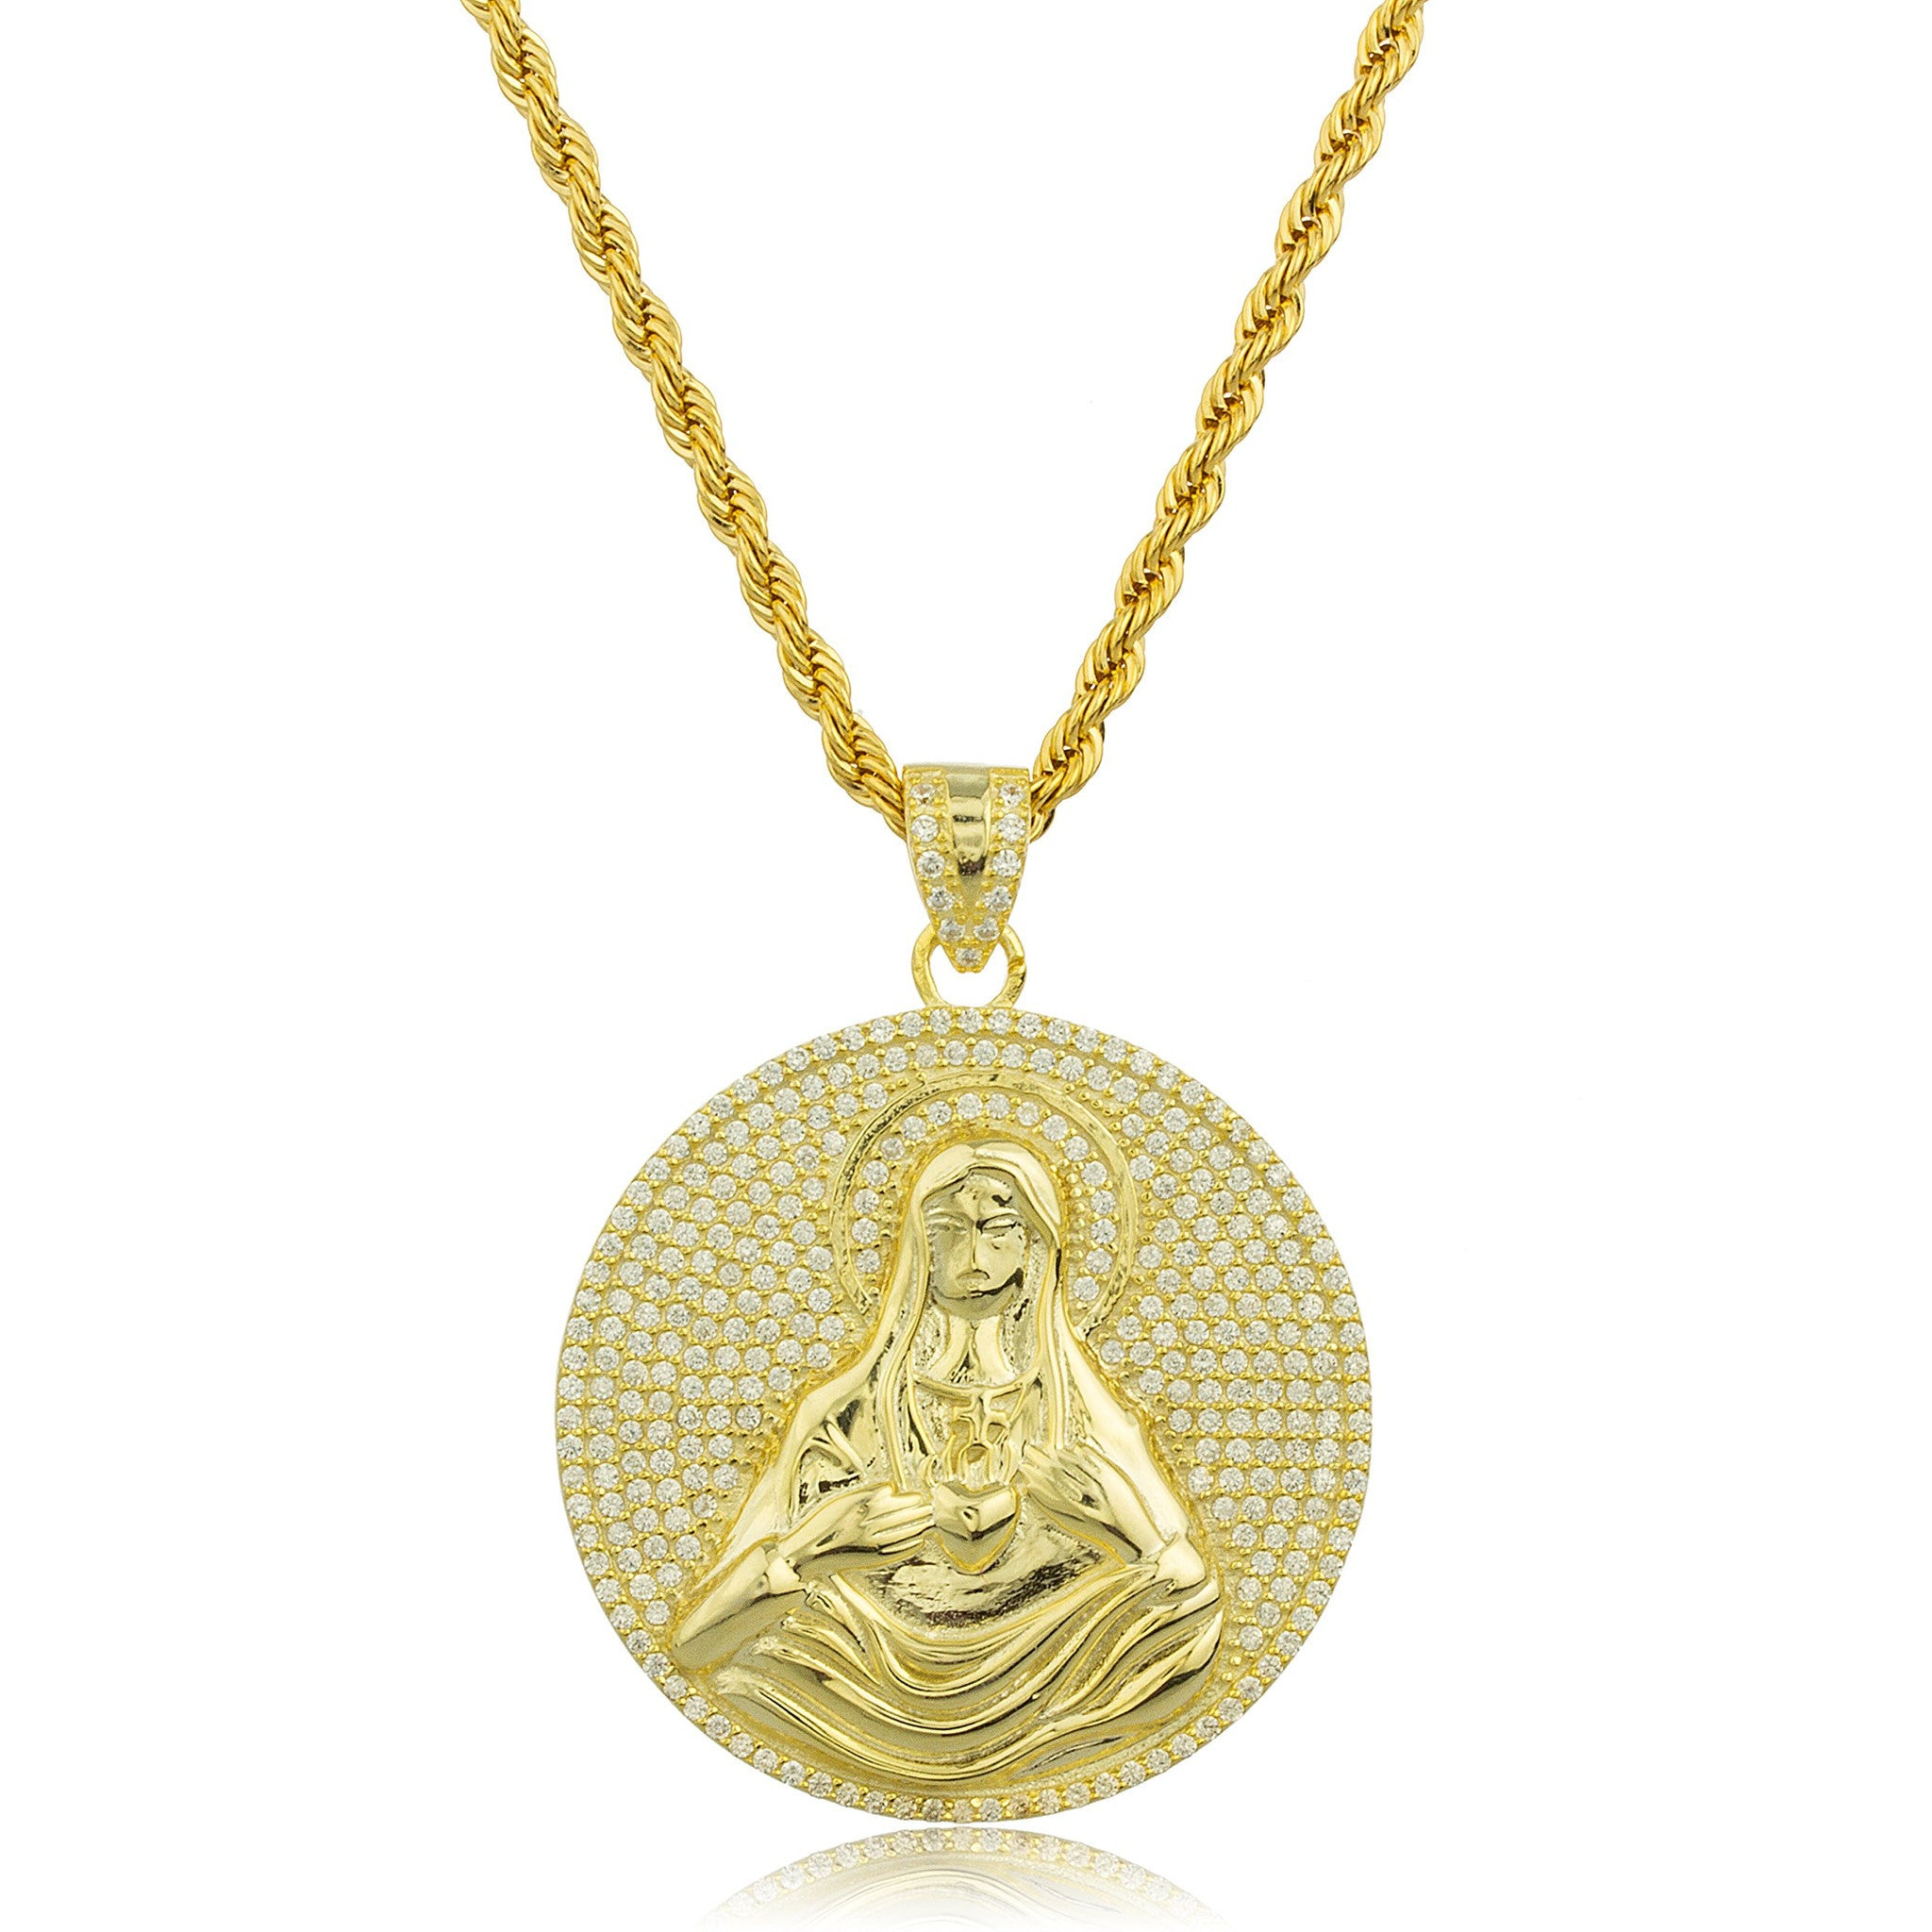 products medalla chain communion collections cadena maria plated mary pendant otoi ave hail medal necklace gold grande con with ibiza medium passion first